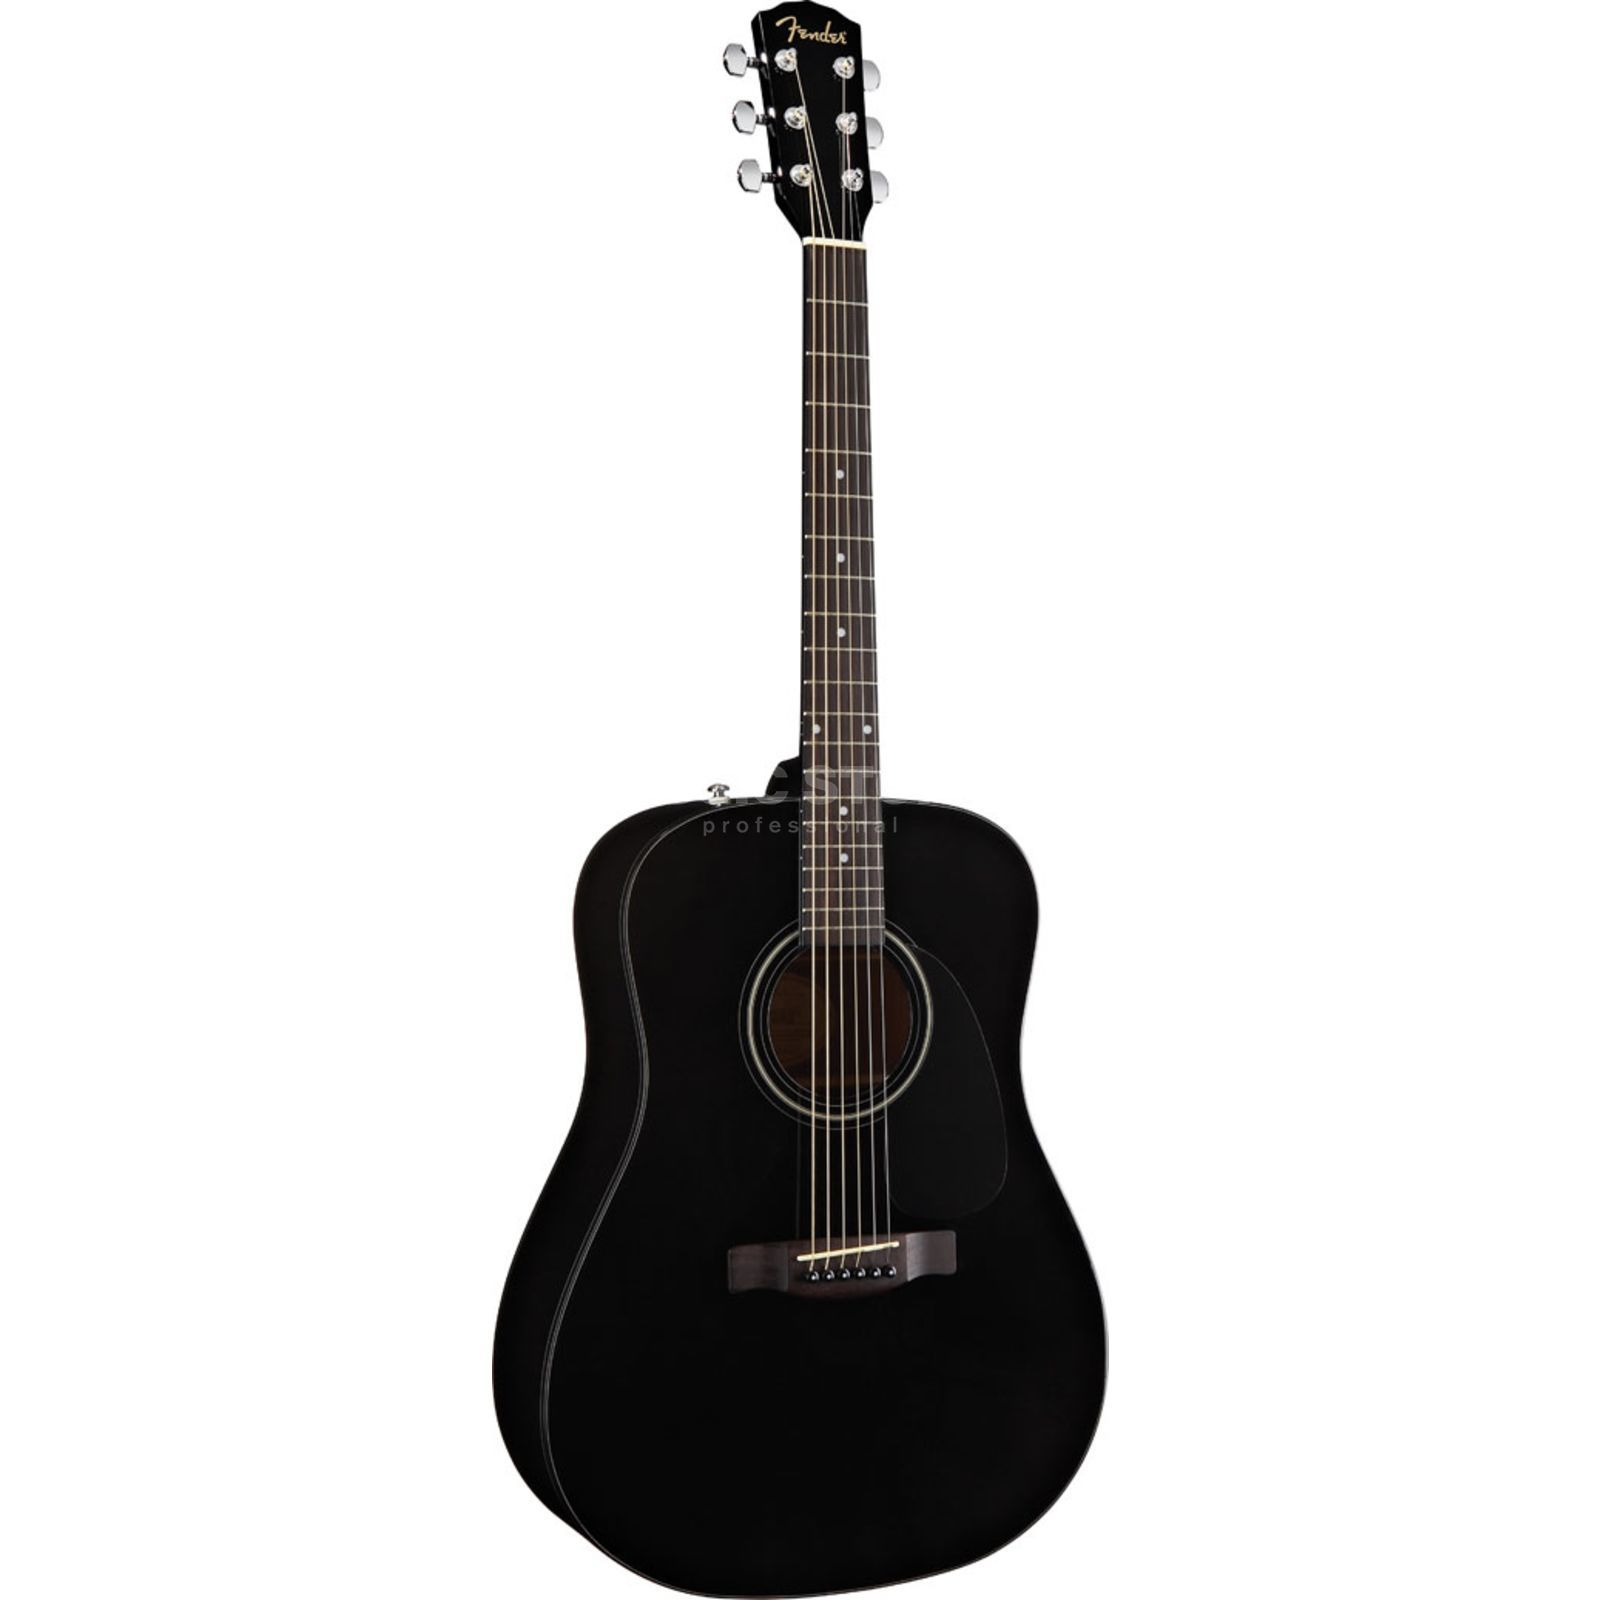 Fender CD 60 Pack Acoustic Guitar Pac k, Black   Produktbillede